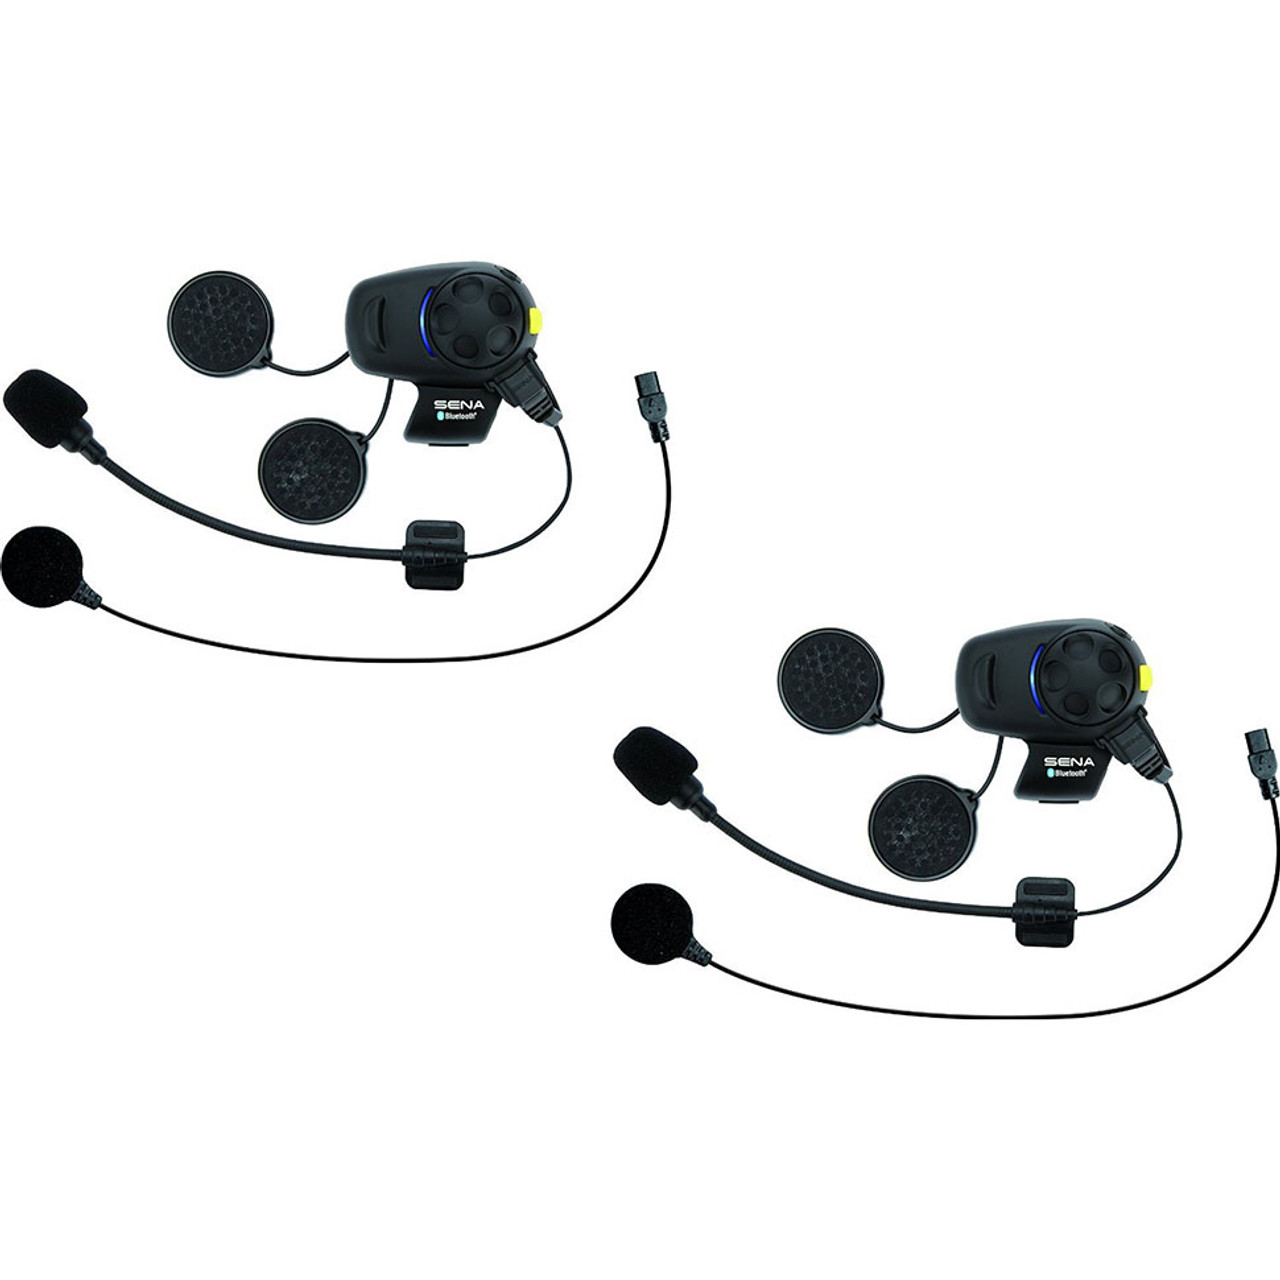 8f4ae6a7f38 Sena SMH5 Stereo Headset with Bluetooth Intercom - Dual Pack for Motorcycle  - Get Lowered Cycles